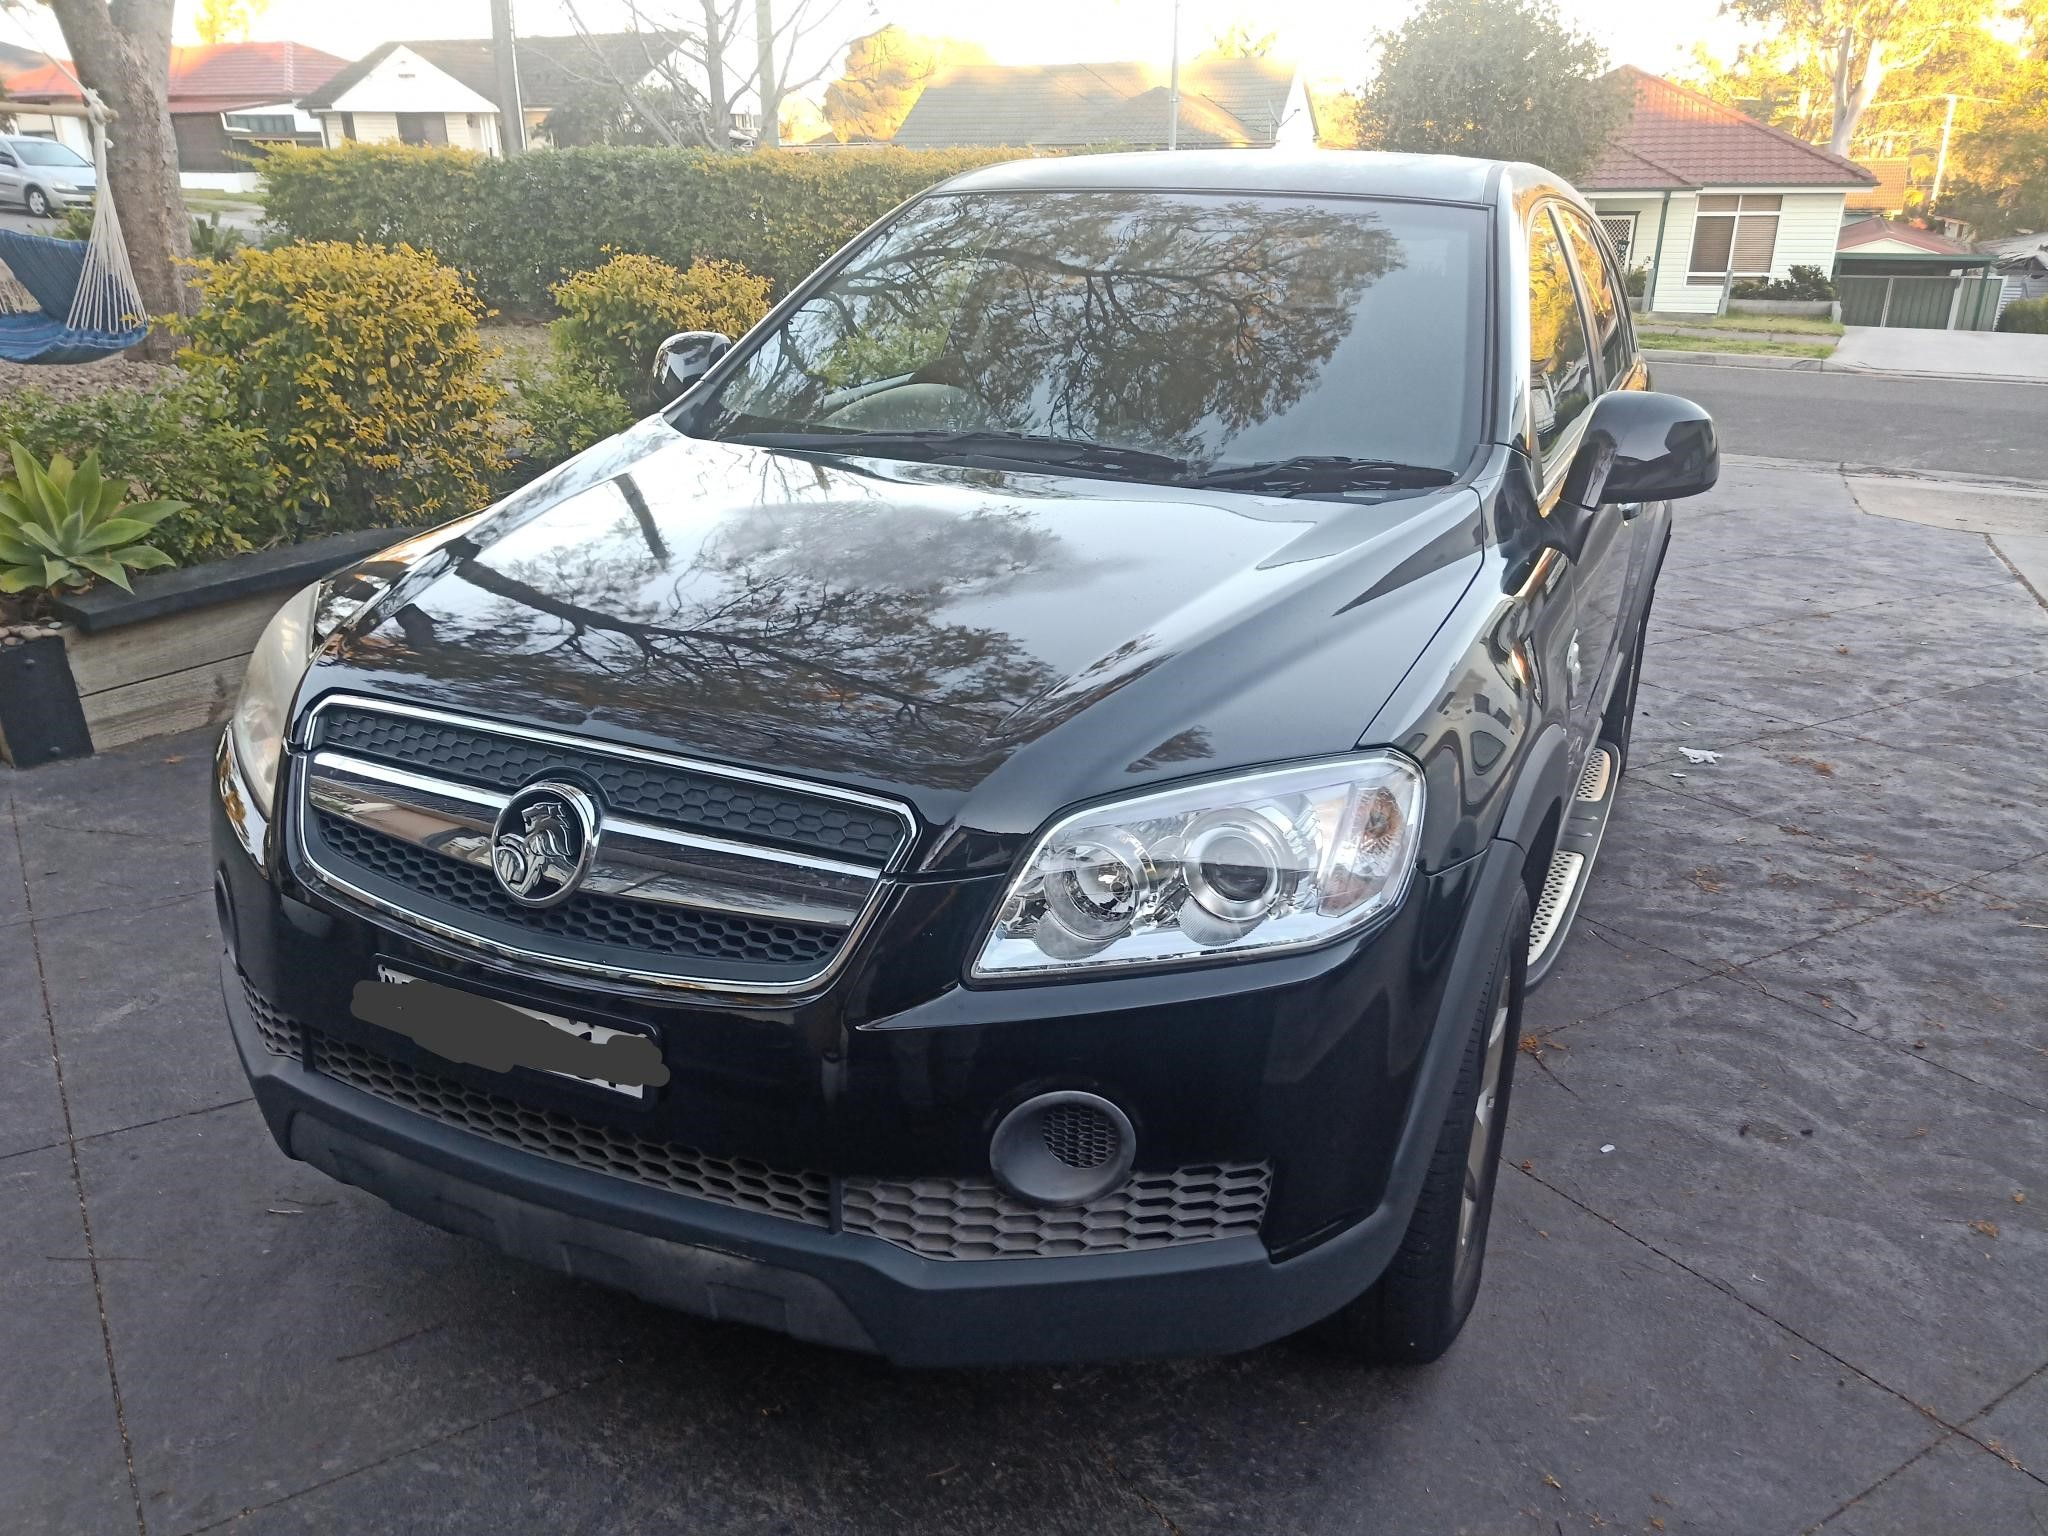 Picture of Manjeet's 2007 Holden Captiva